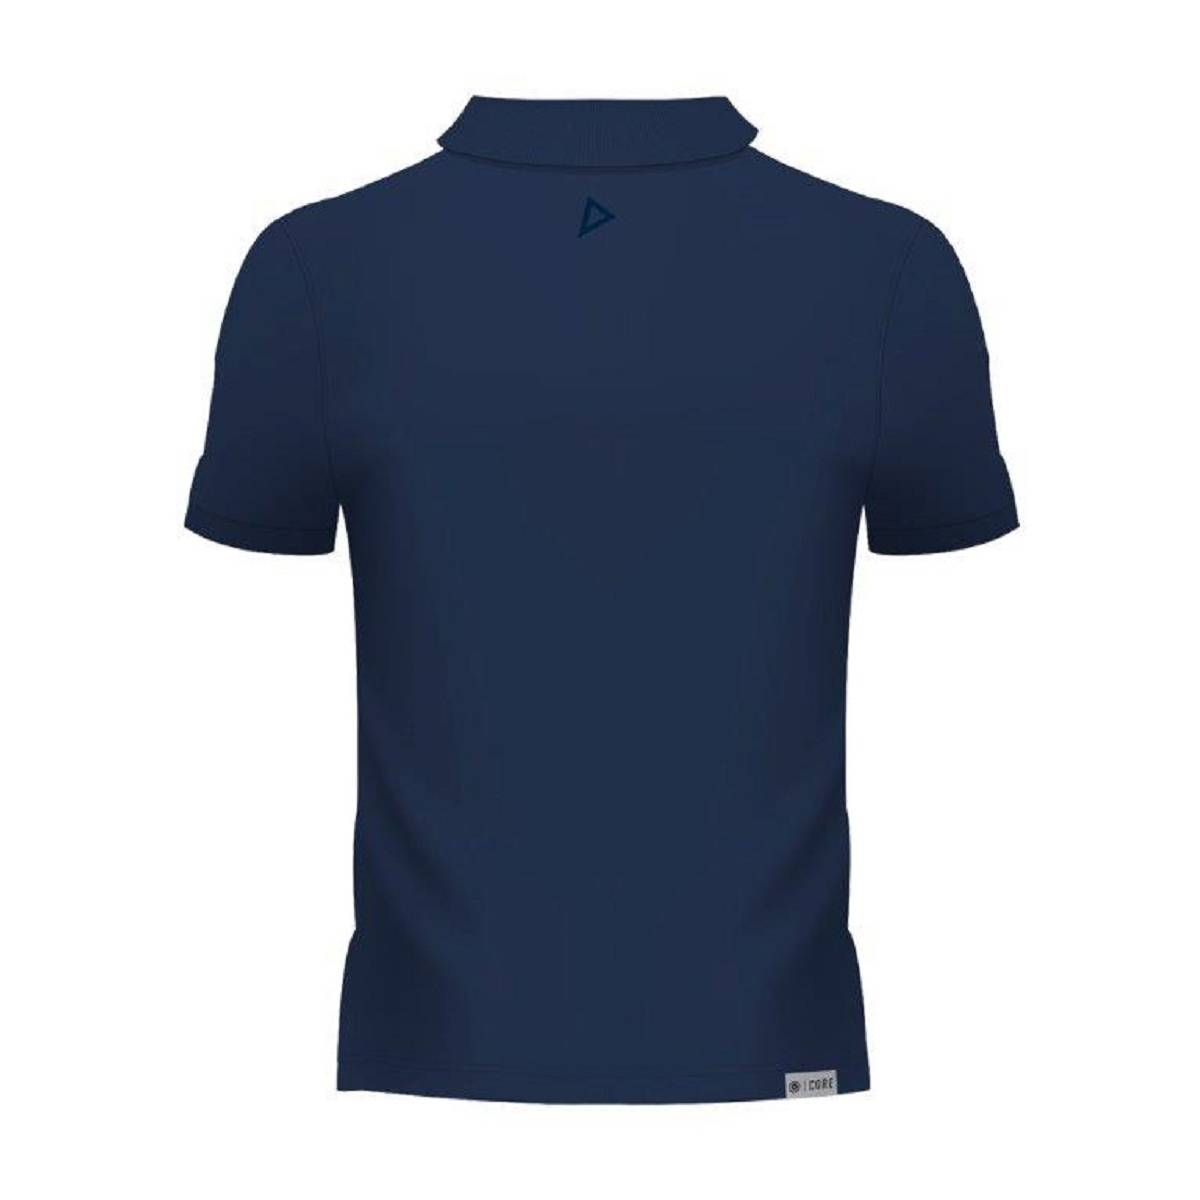 Adults Navy Cotton Polo1